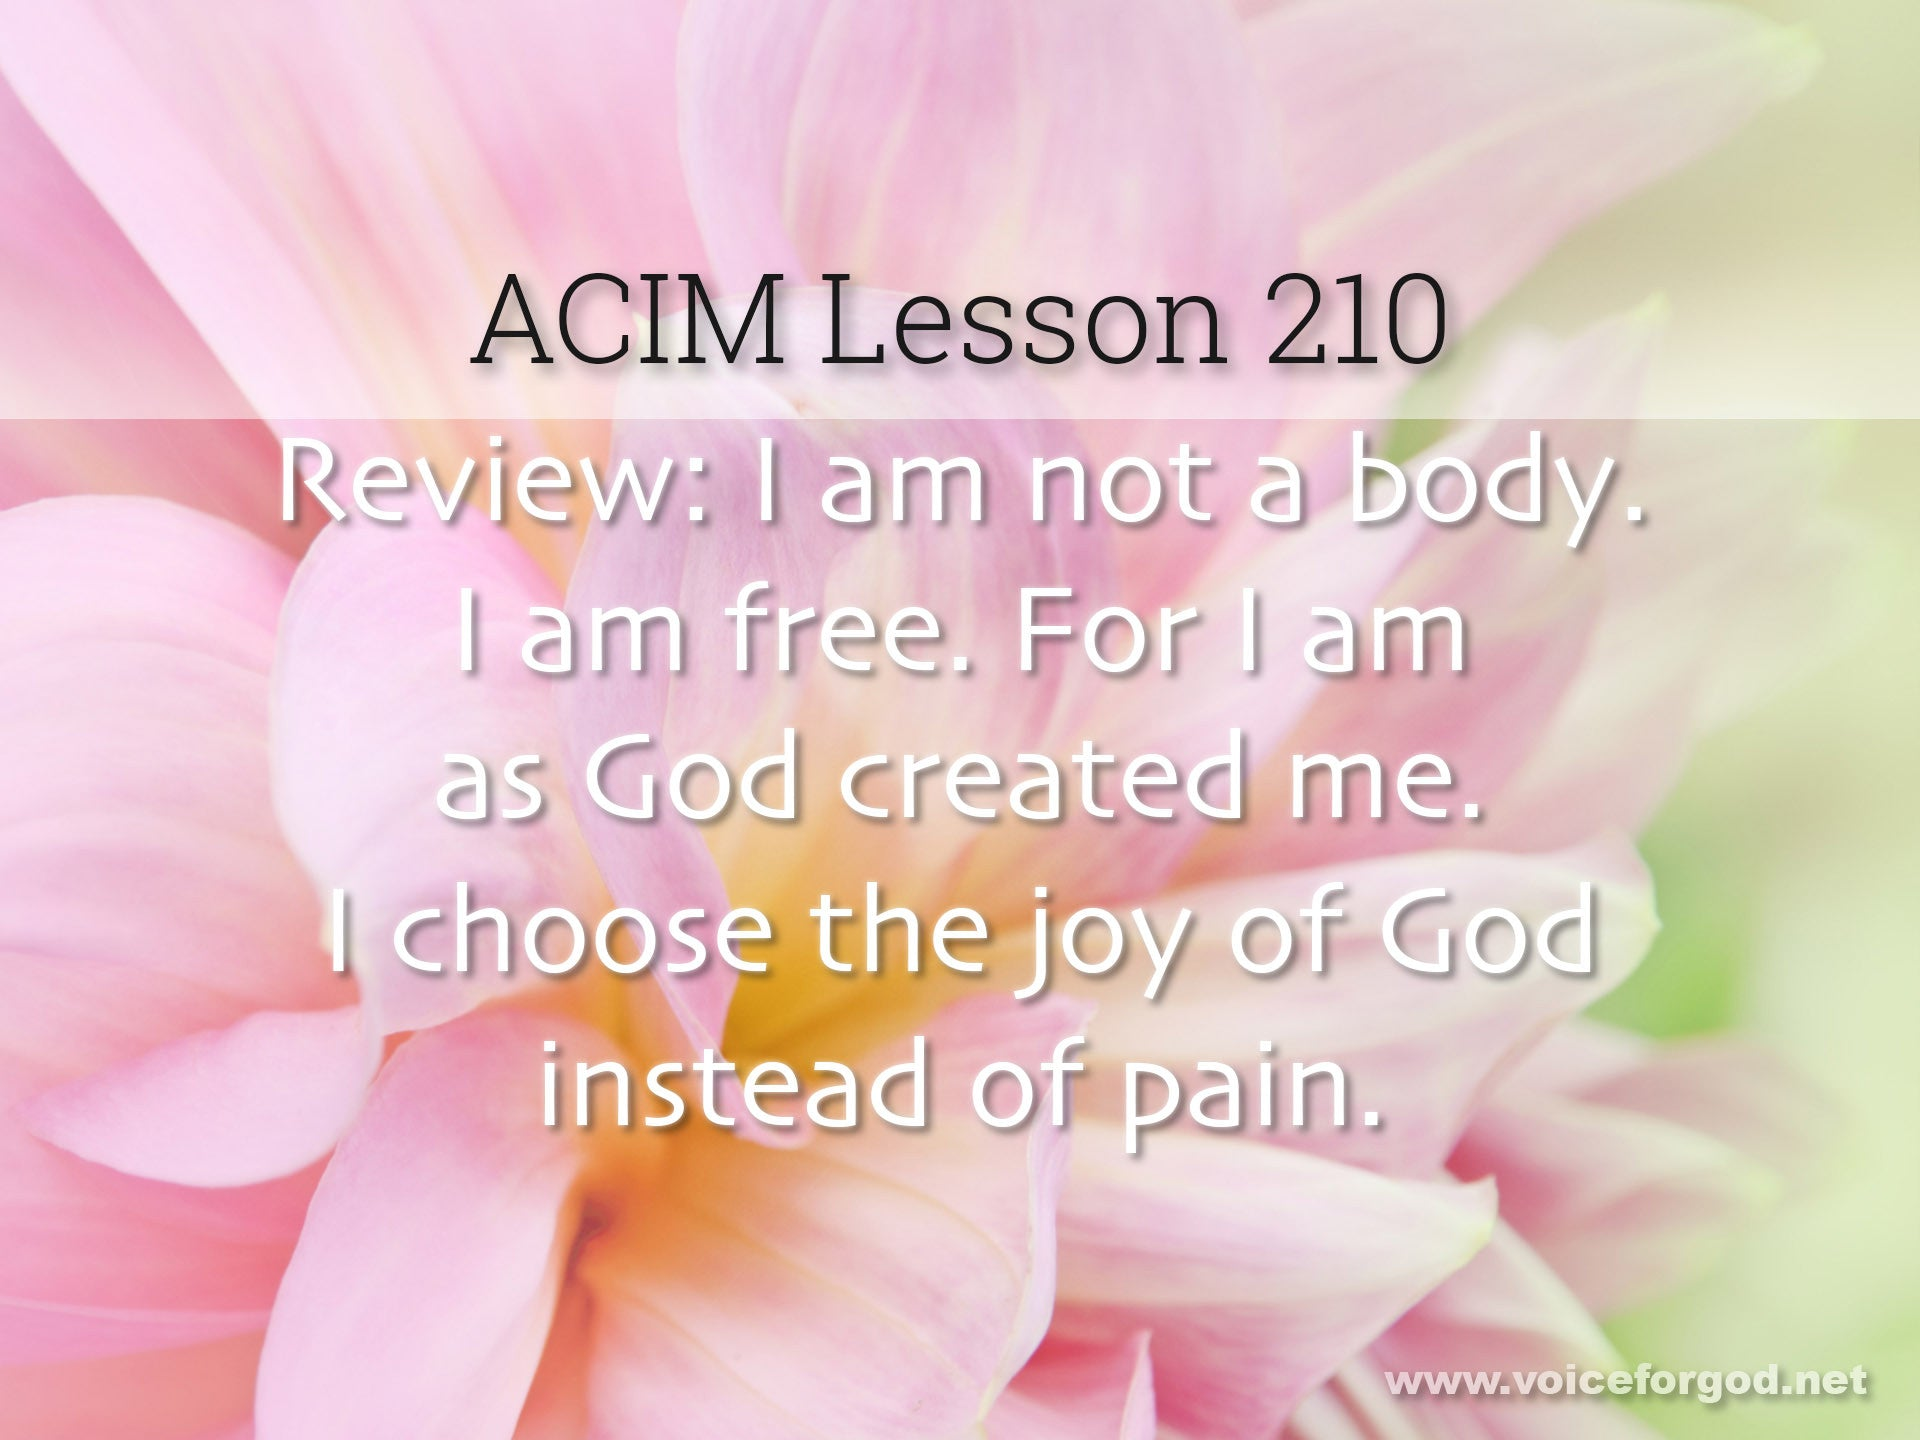 ACIM Lesson 210 - A Course in Miracles Workbook Lesson 210